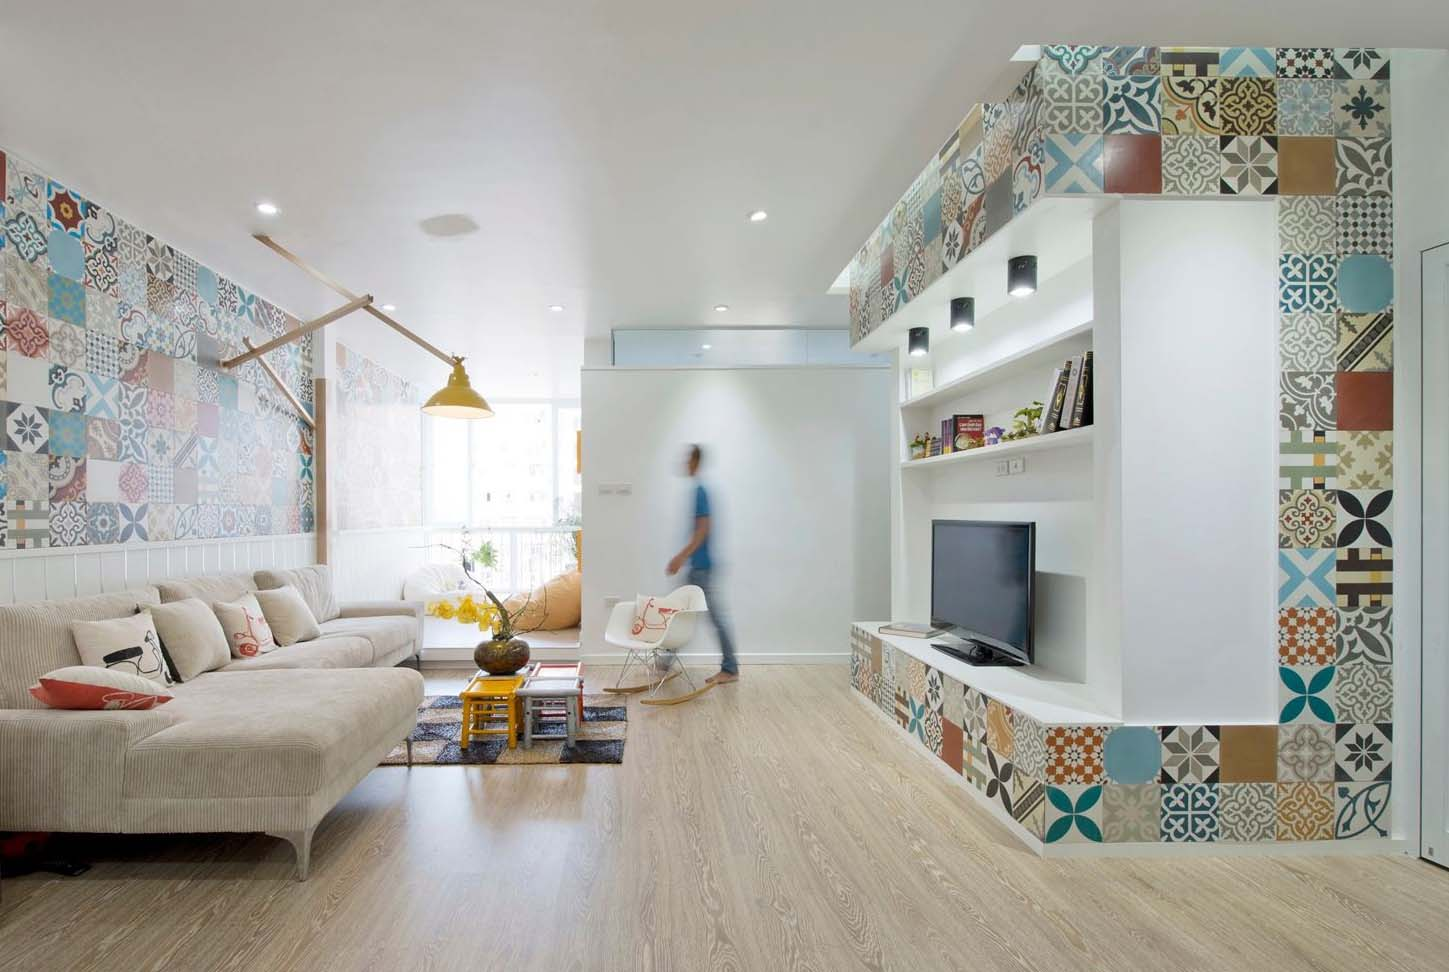 Piastrelle colorate per ht apartment by landmak architecture arc